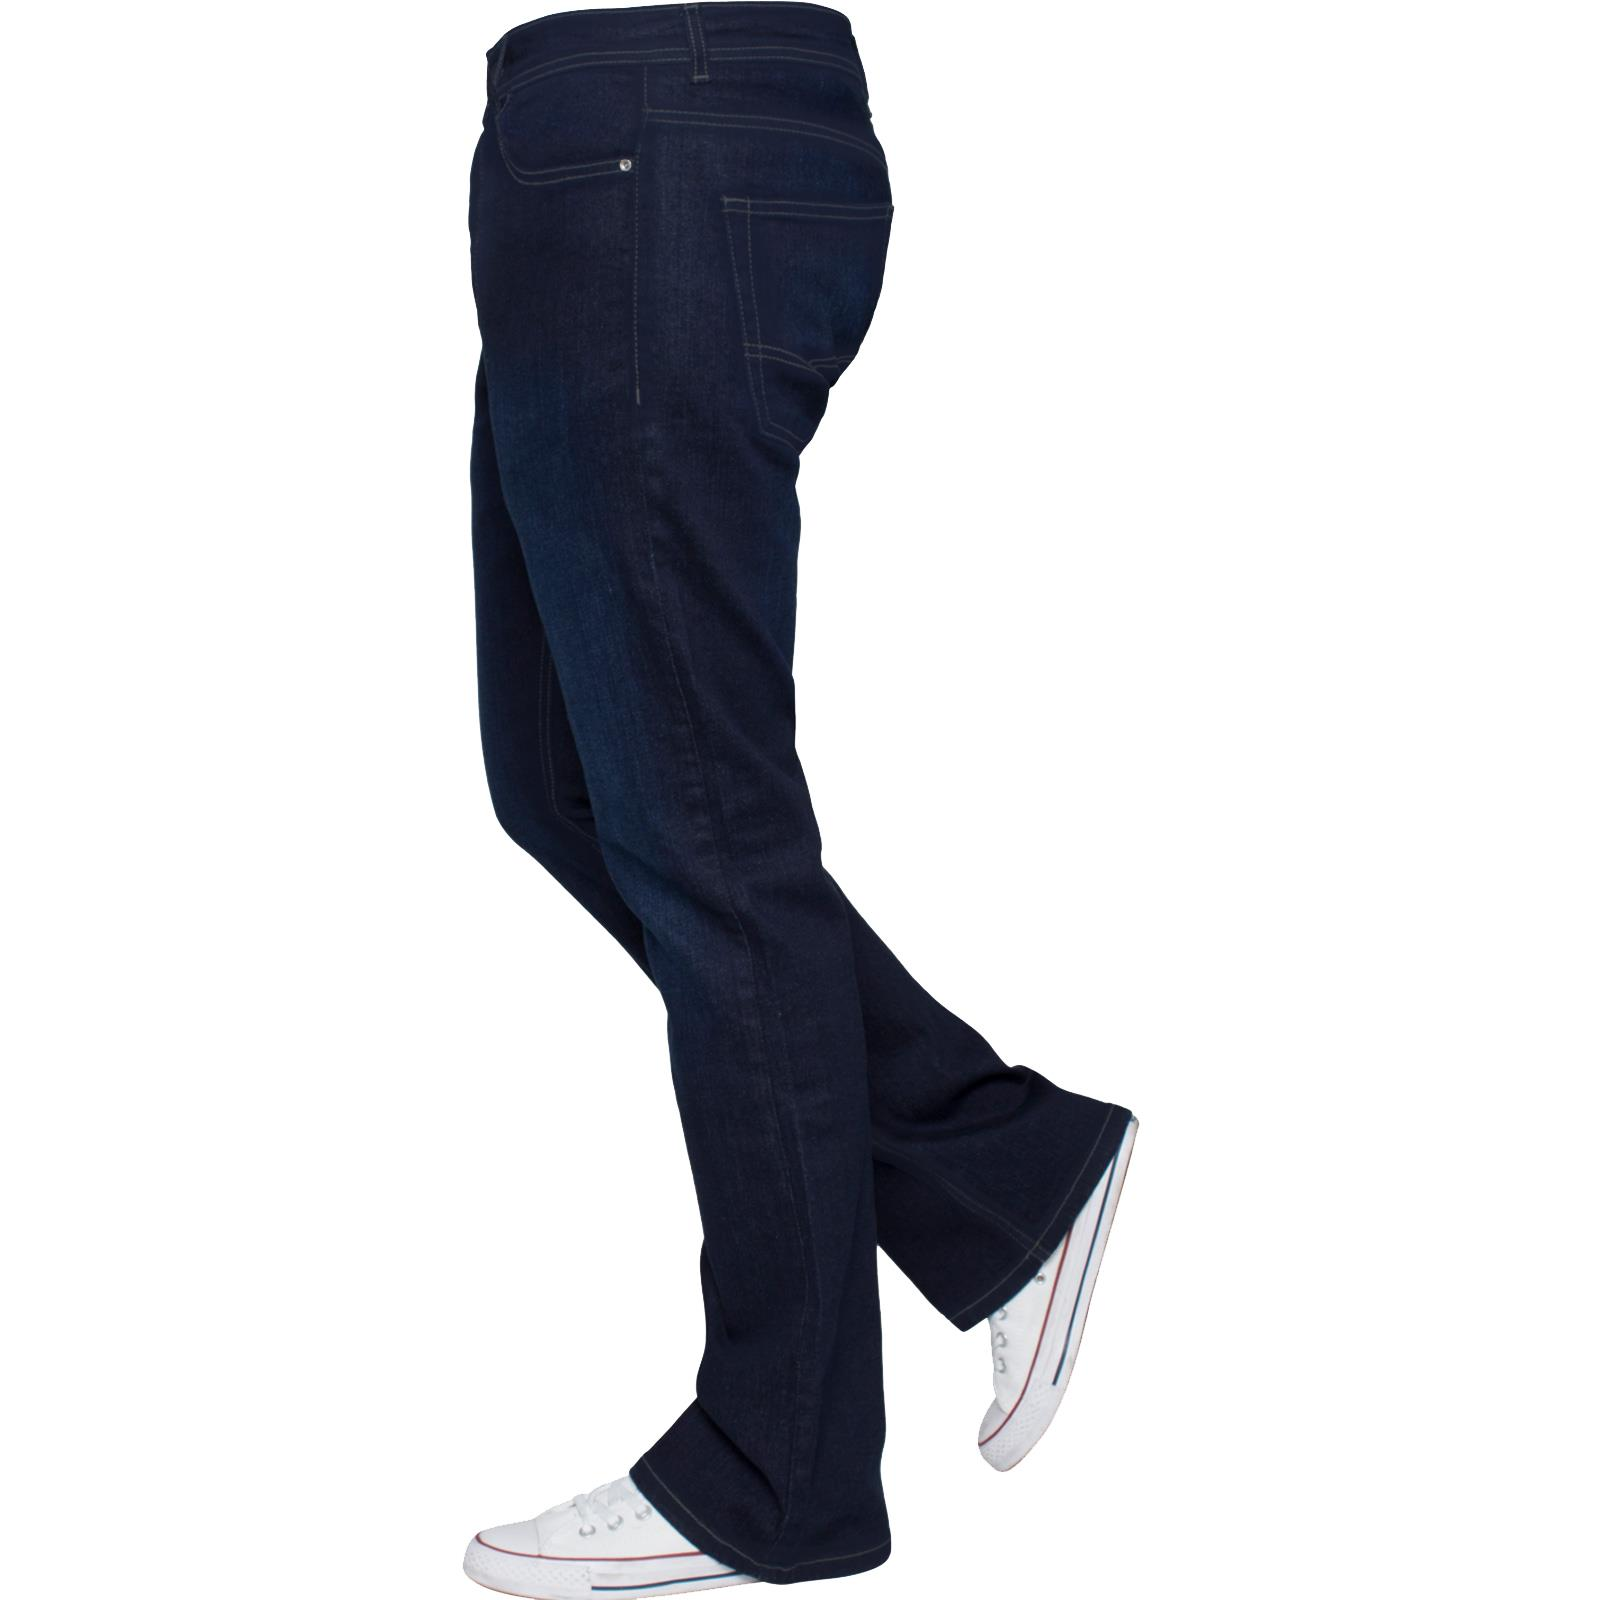 New-Enzo-Mens-Designer-Bootcut-Wide-Leg-Jeans-Flared-Stretch-Denim-All-Waists thumbnail 17